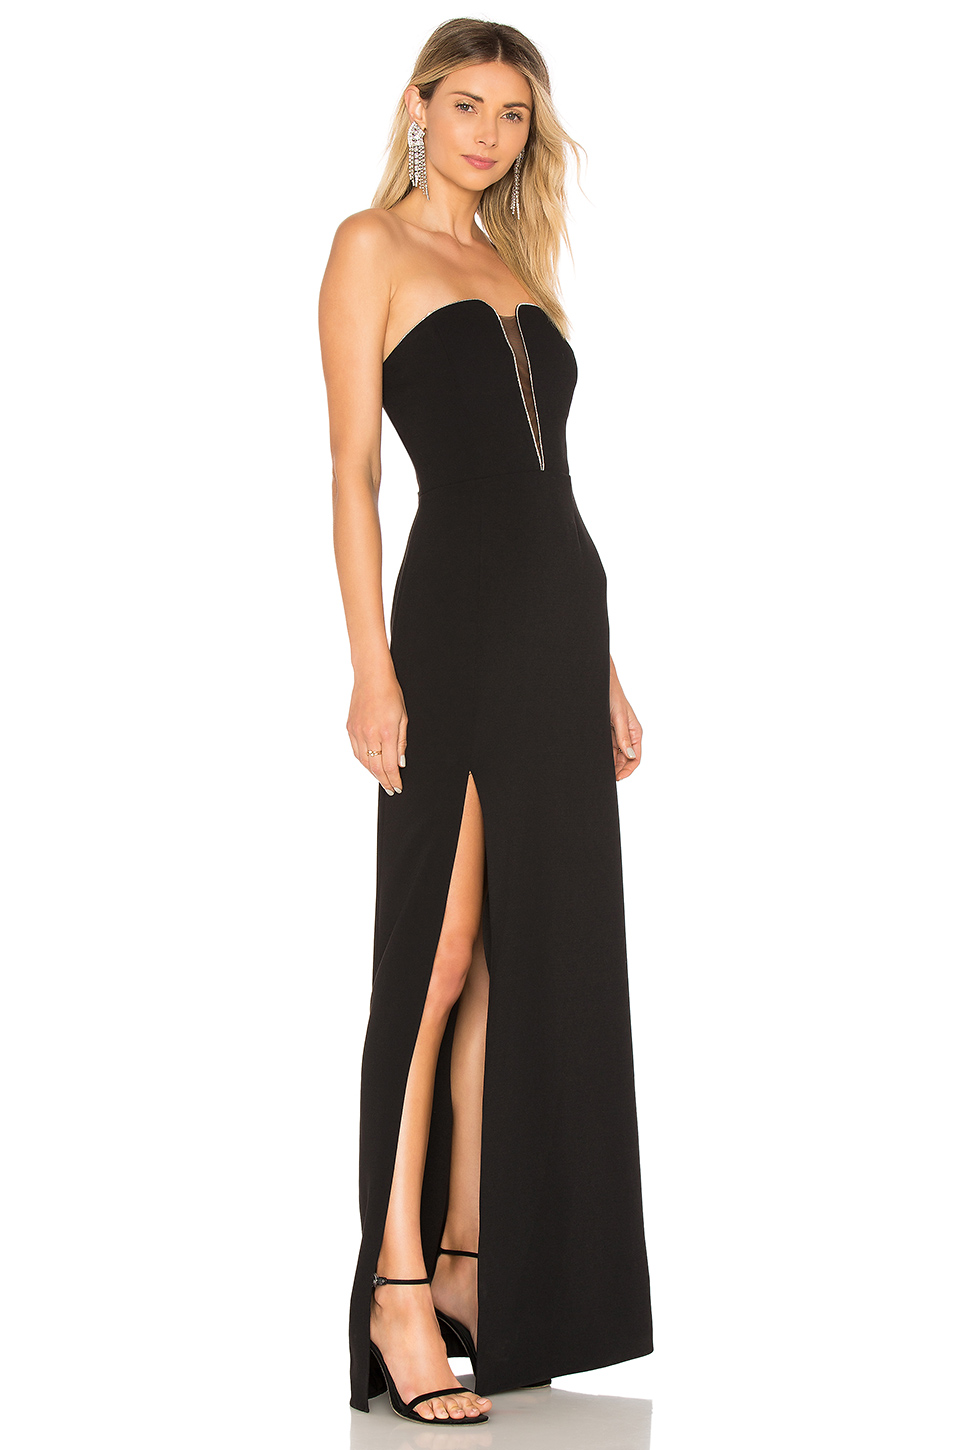 0767cefb8ce4 Buy Original Halston Heritage Strapless Fitted Gown at Indonesia ...